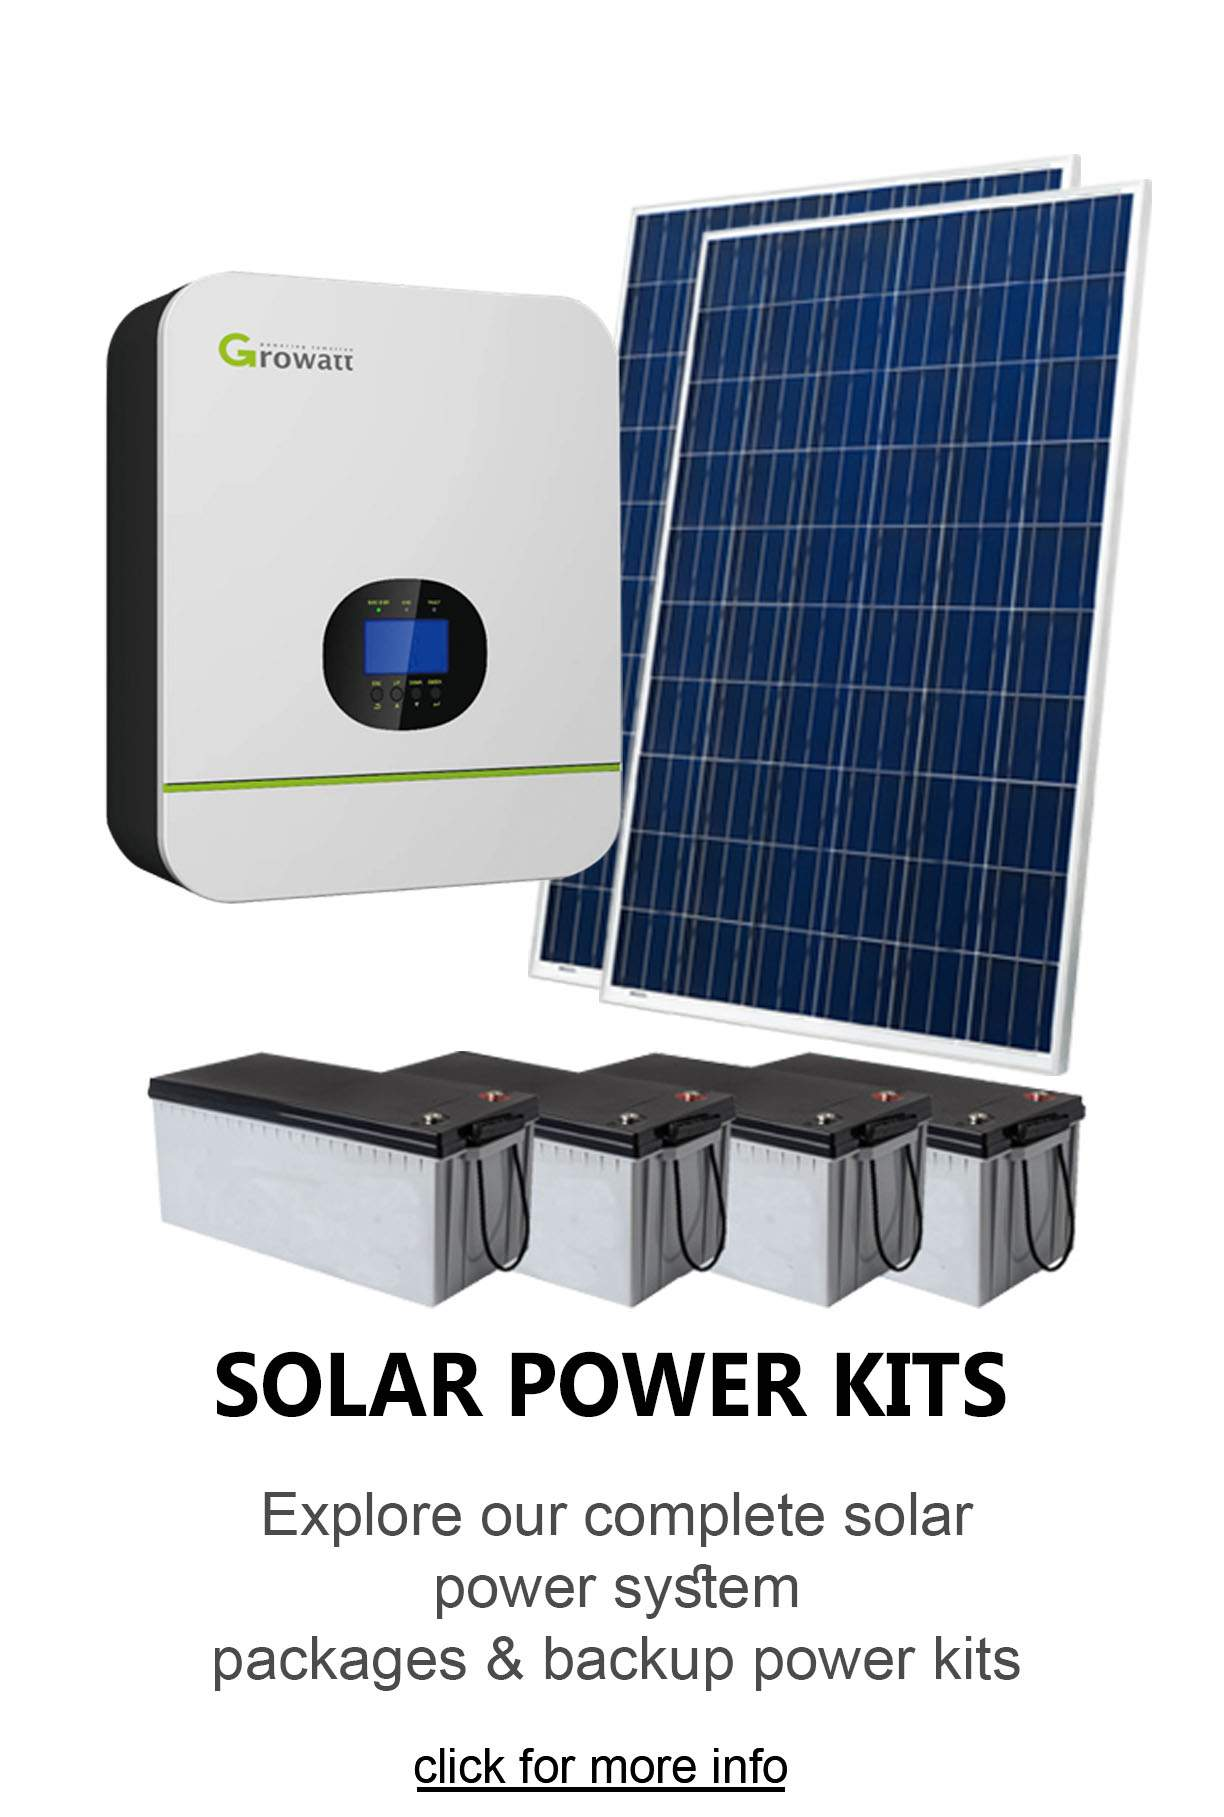 complete solar power kits for homes in Pretoria south africa or diy solar system for sale in Pretoria south africa.